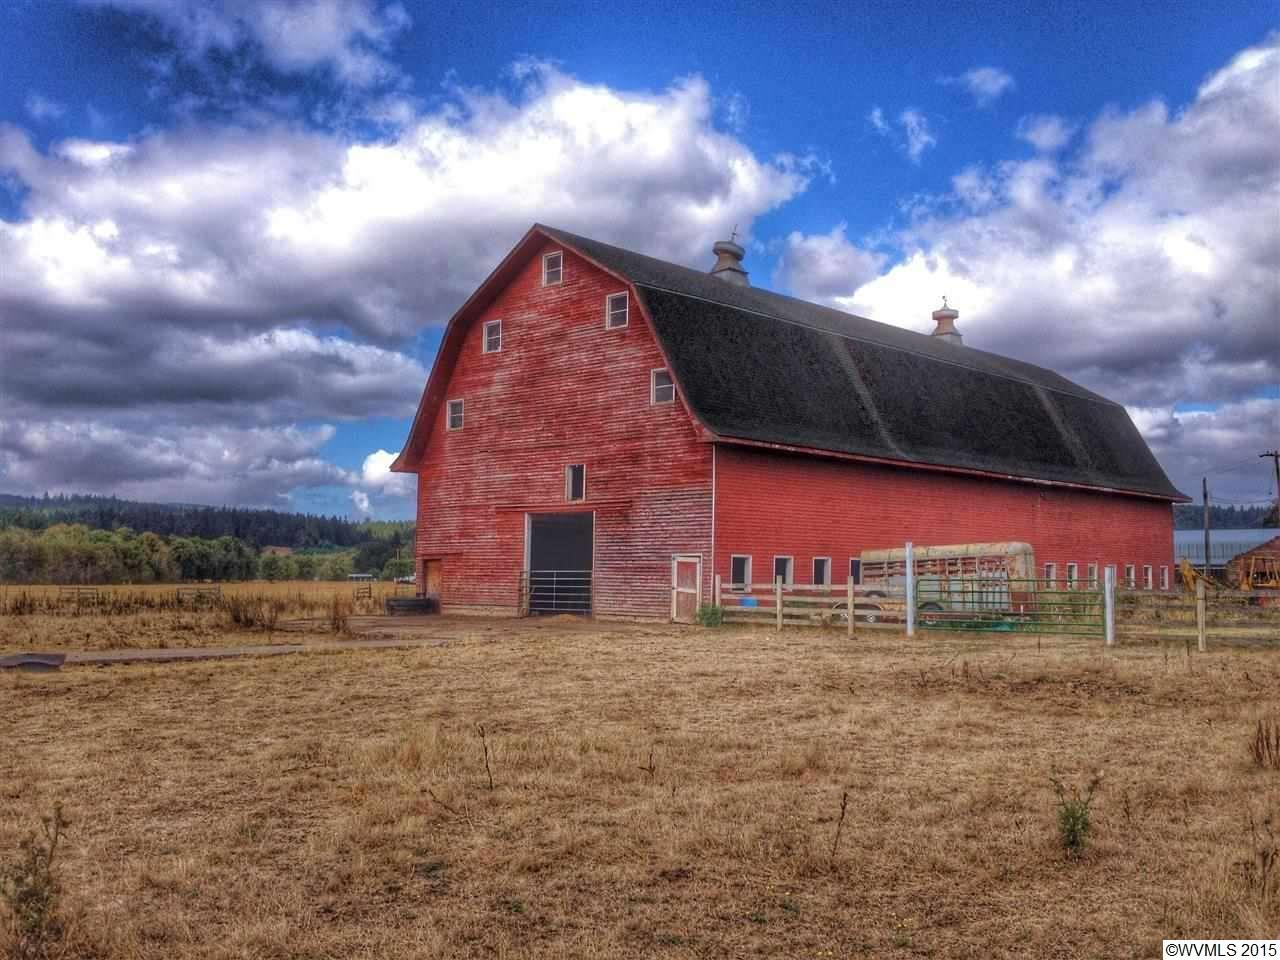 Image of Residential for Sale near Lebanon, Oregon, in Linn County: 74.09 acres